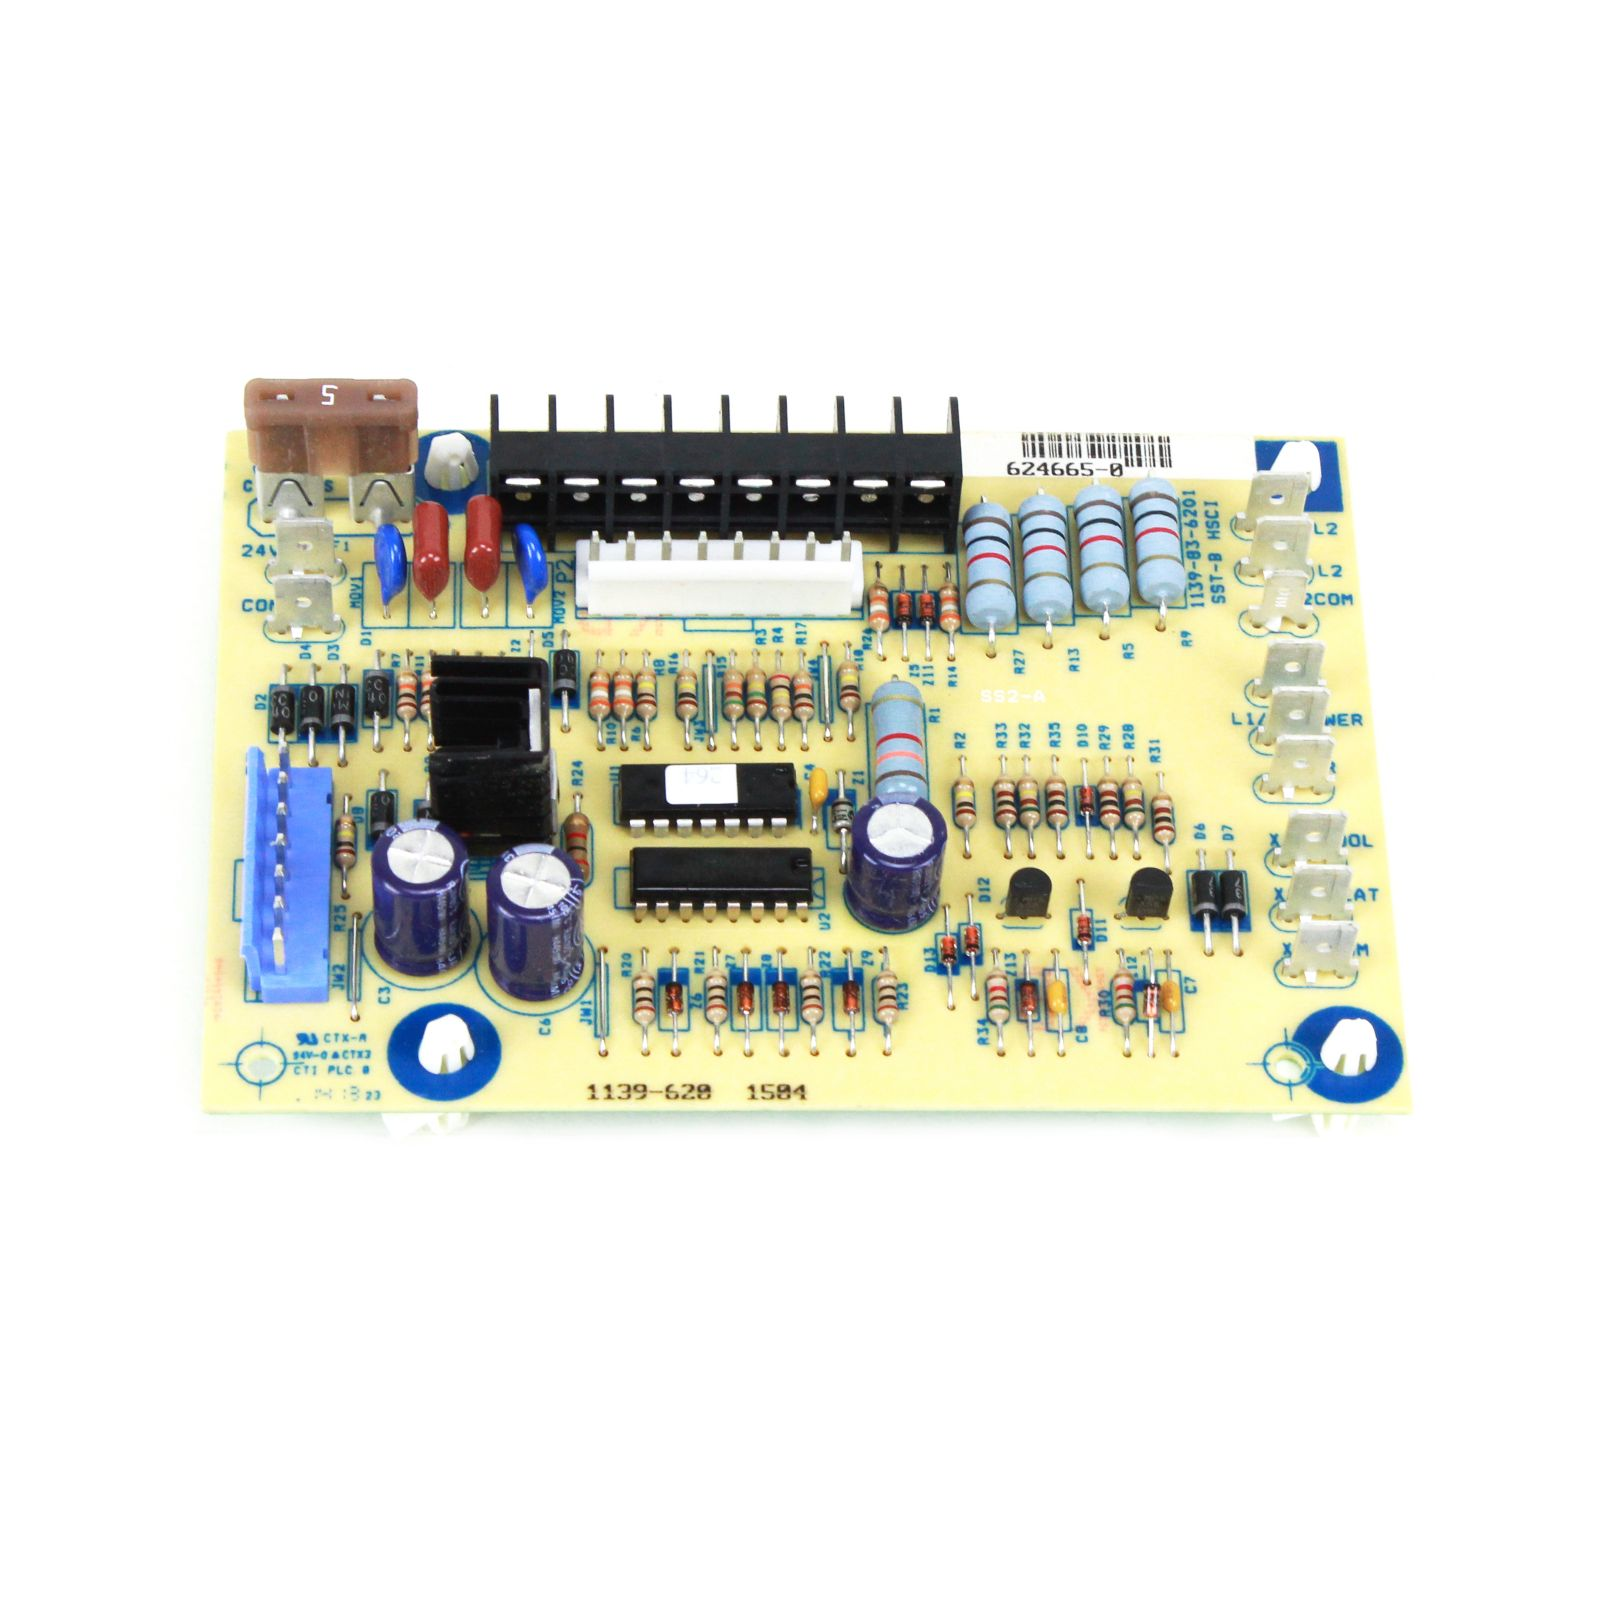 Nortek 904532 - Control Board, 3 - 4 Ton Air Handler, B5